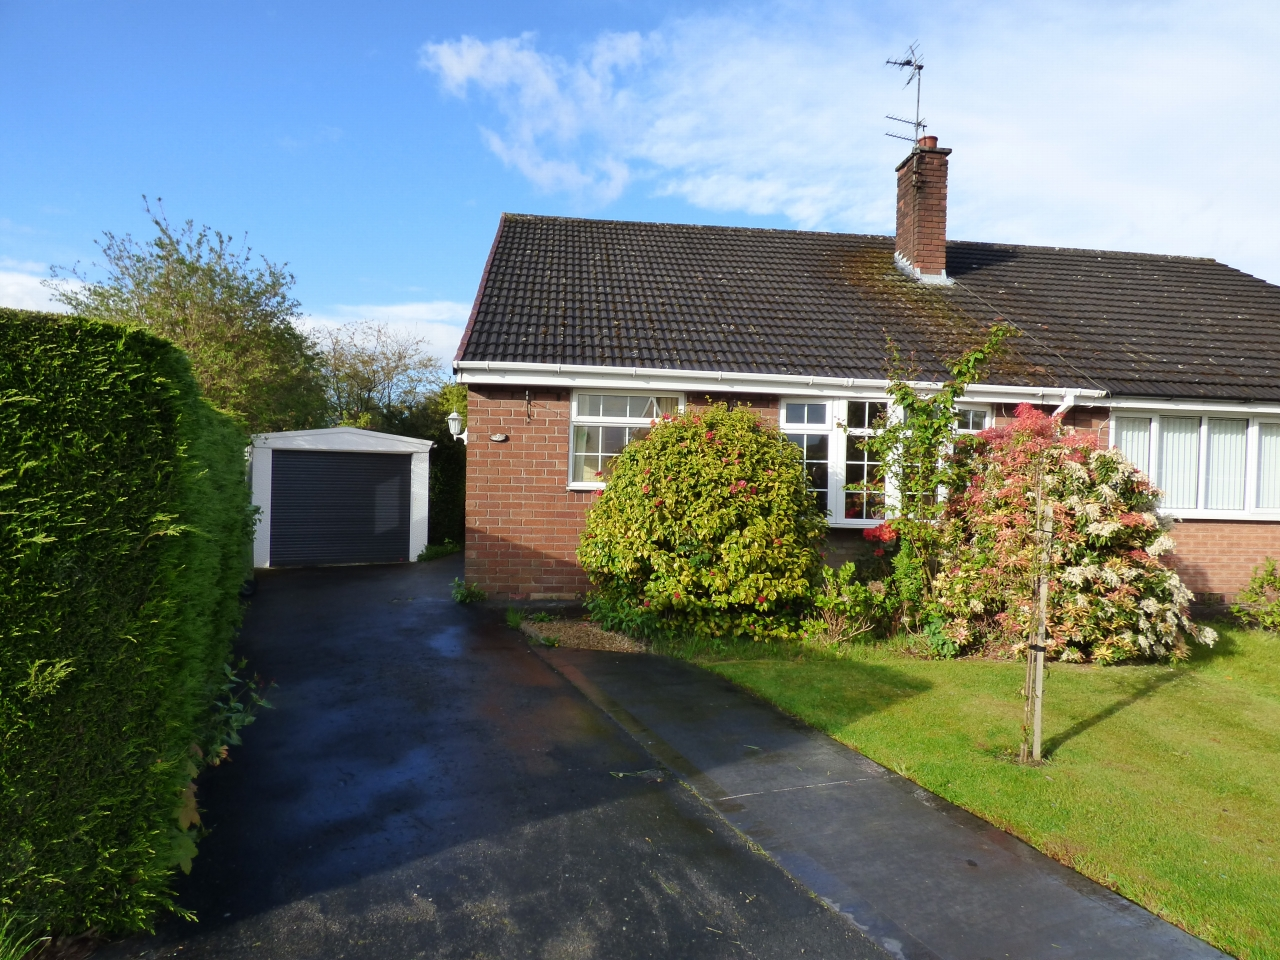 2 Bedroom Detached Bungalow Bungalow For Sale - Image 1